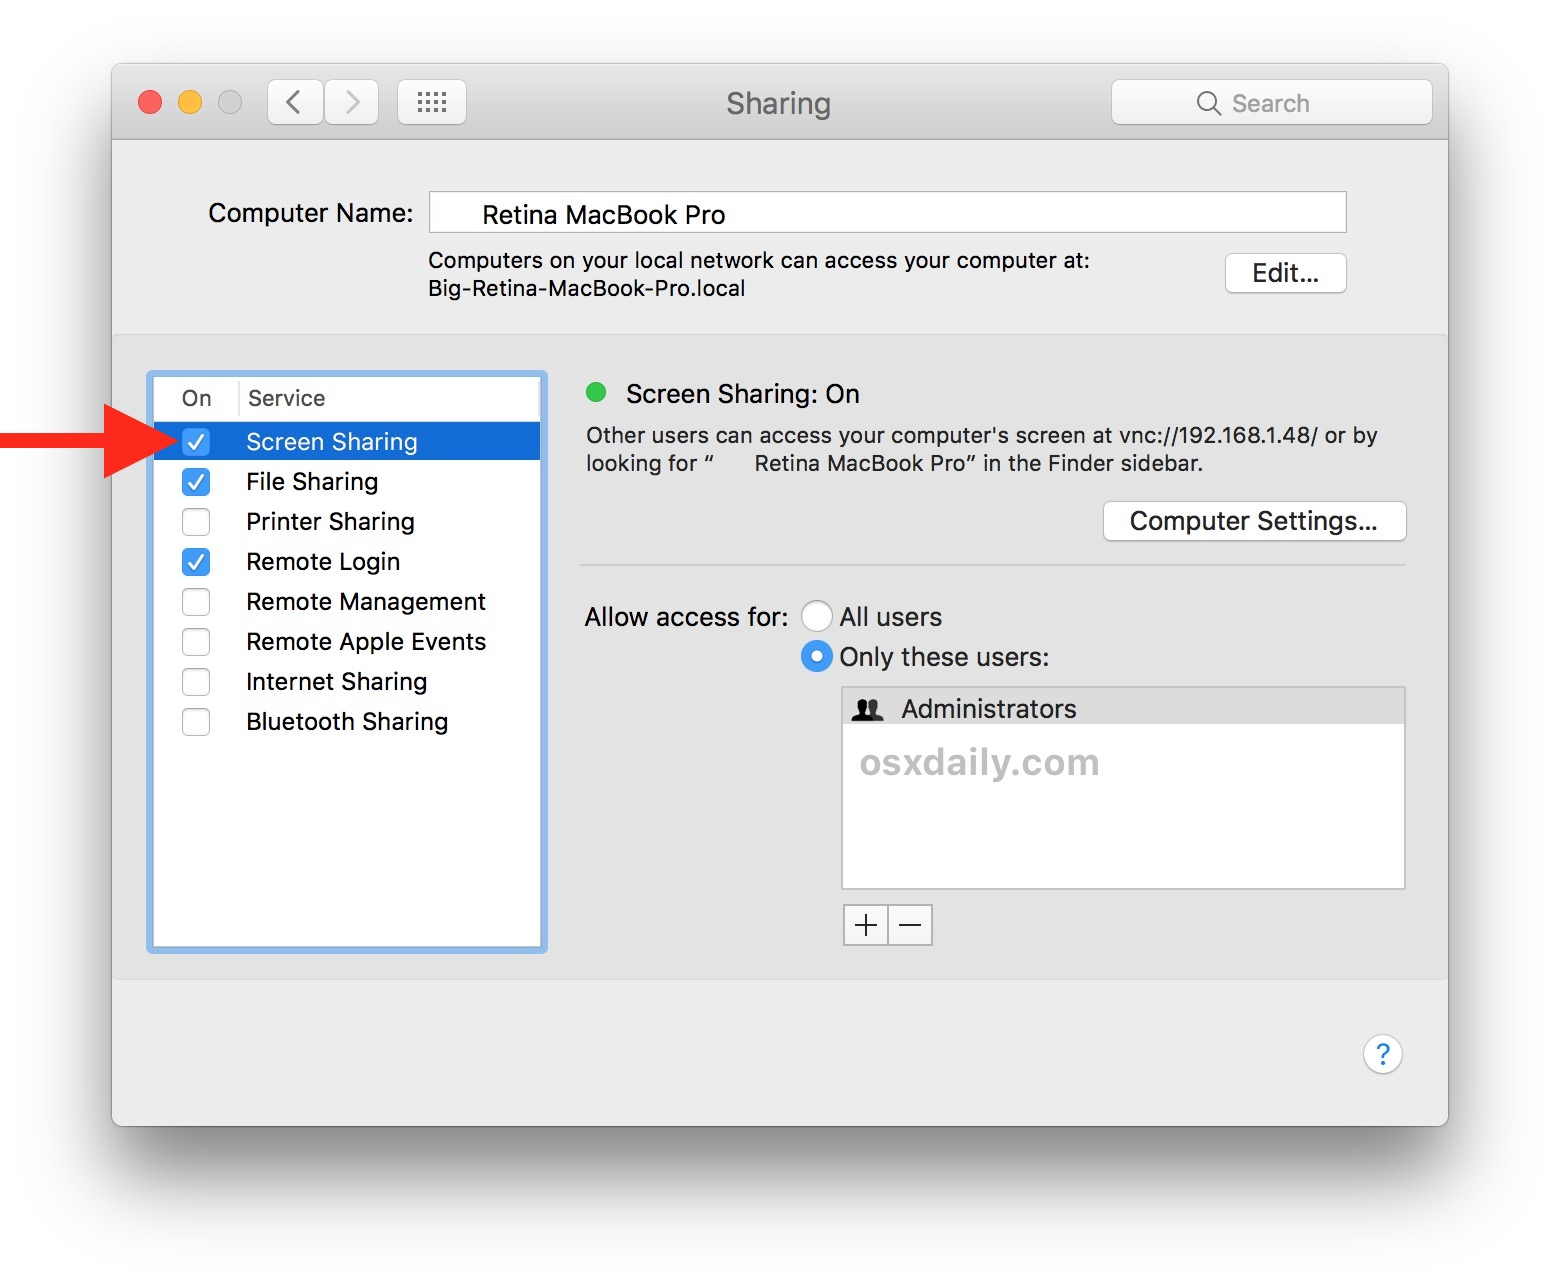 Enable Screen sharing on the Mac